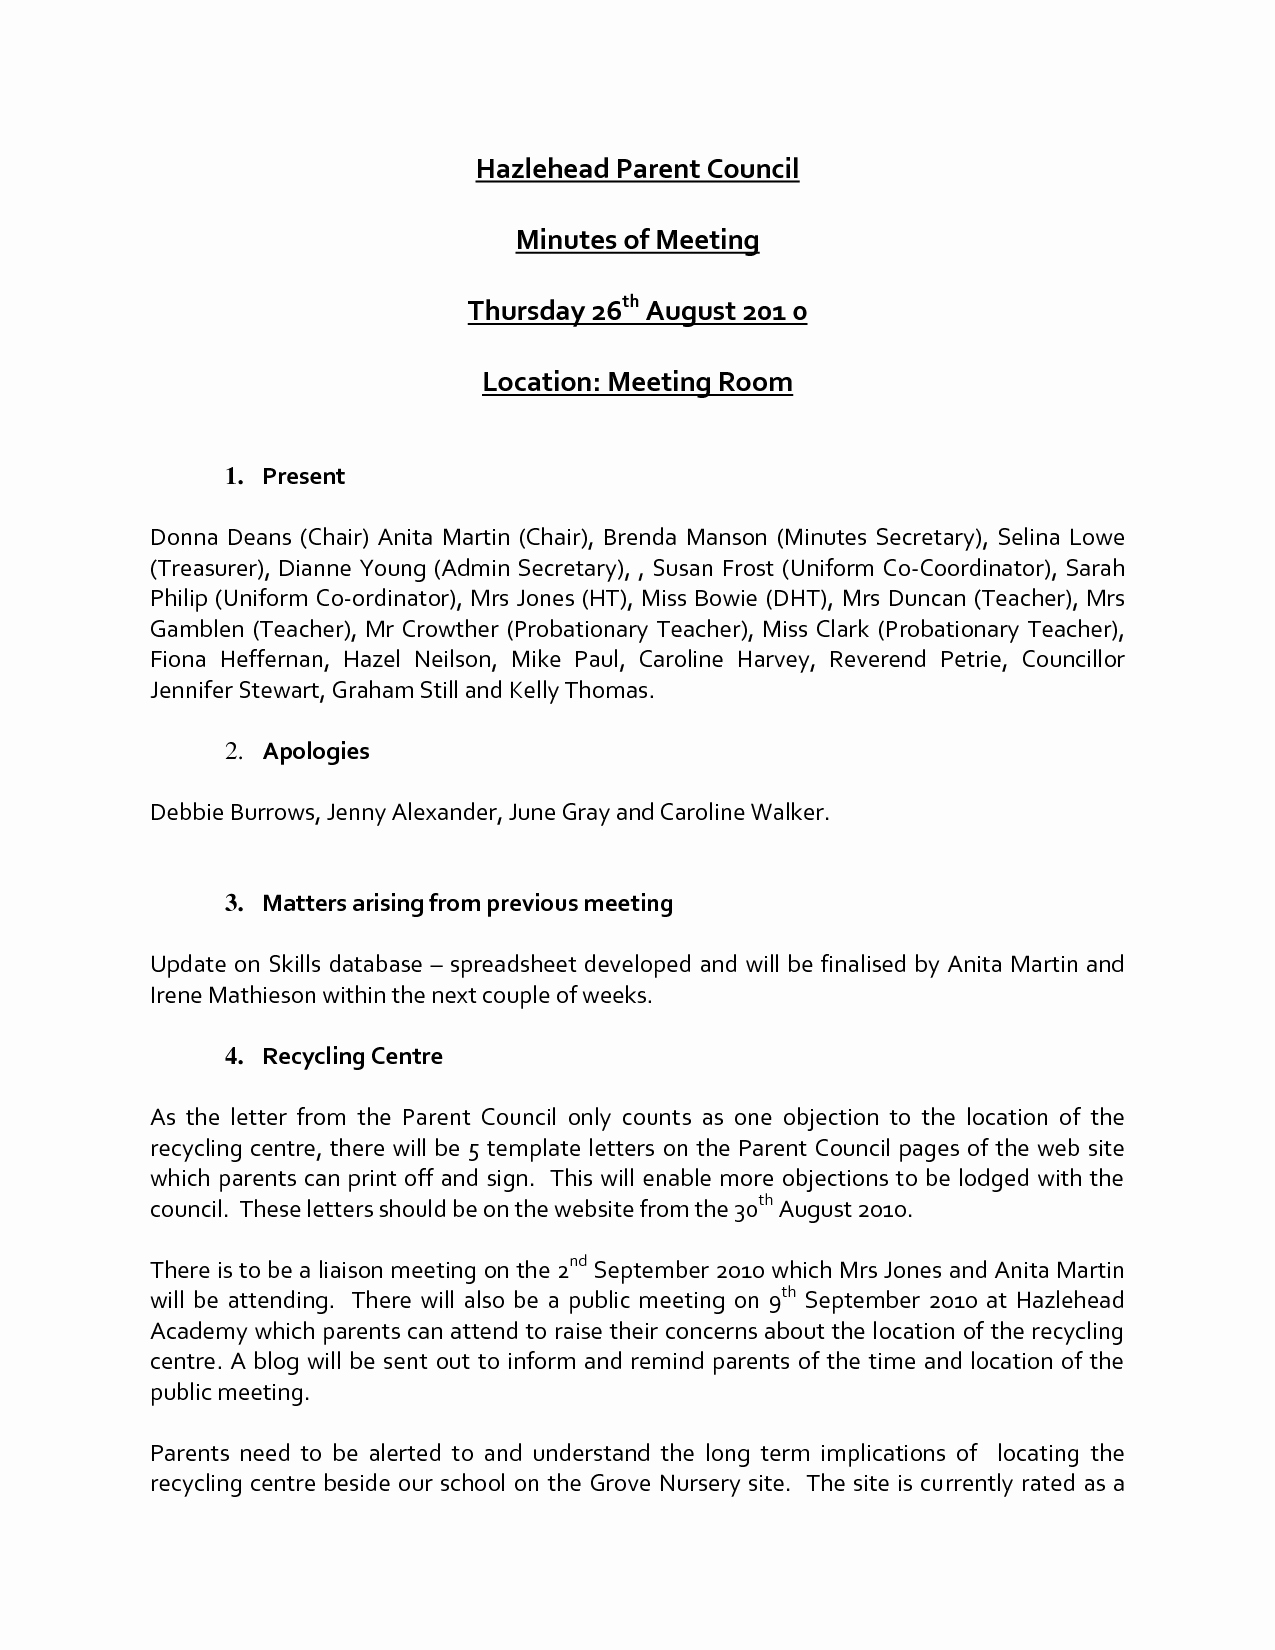 Minutes Of the Meeting Template New Agenda Word Template Example Mughals